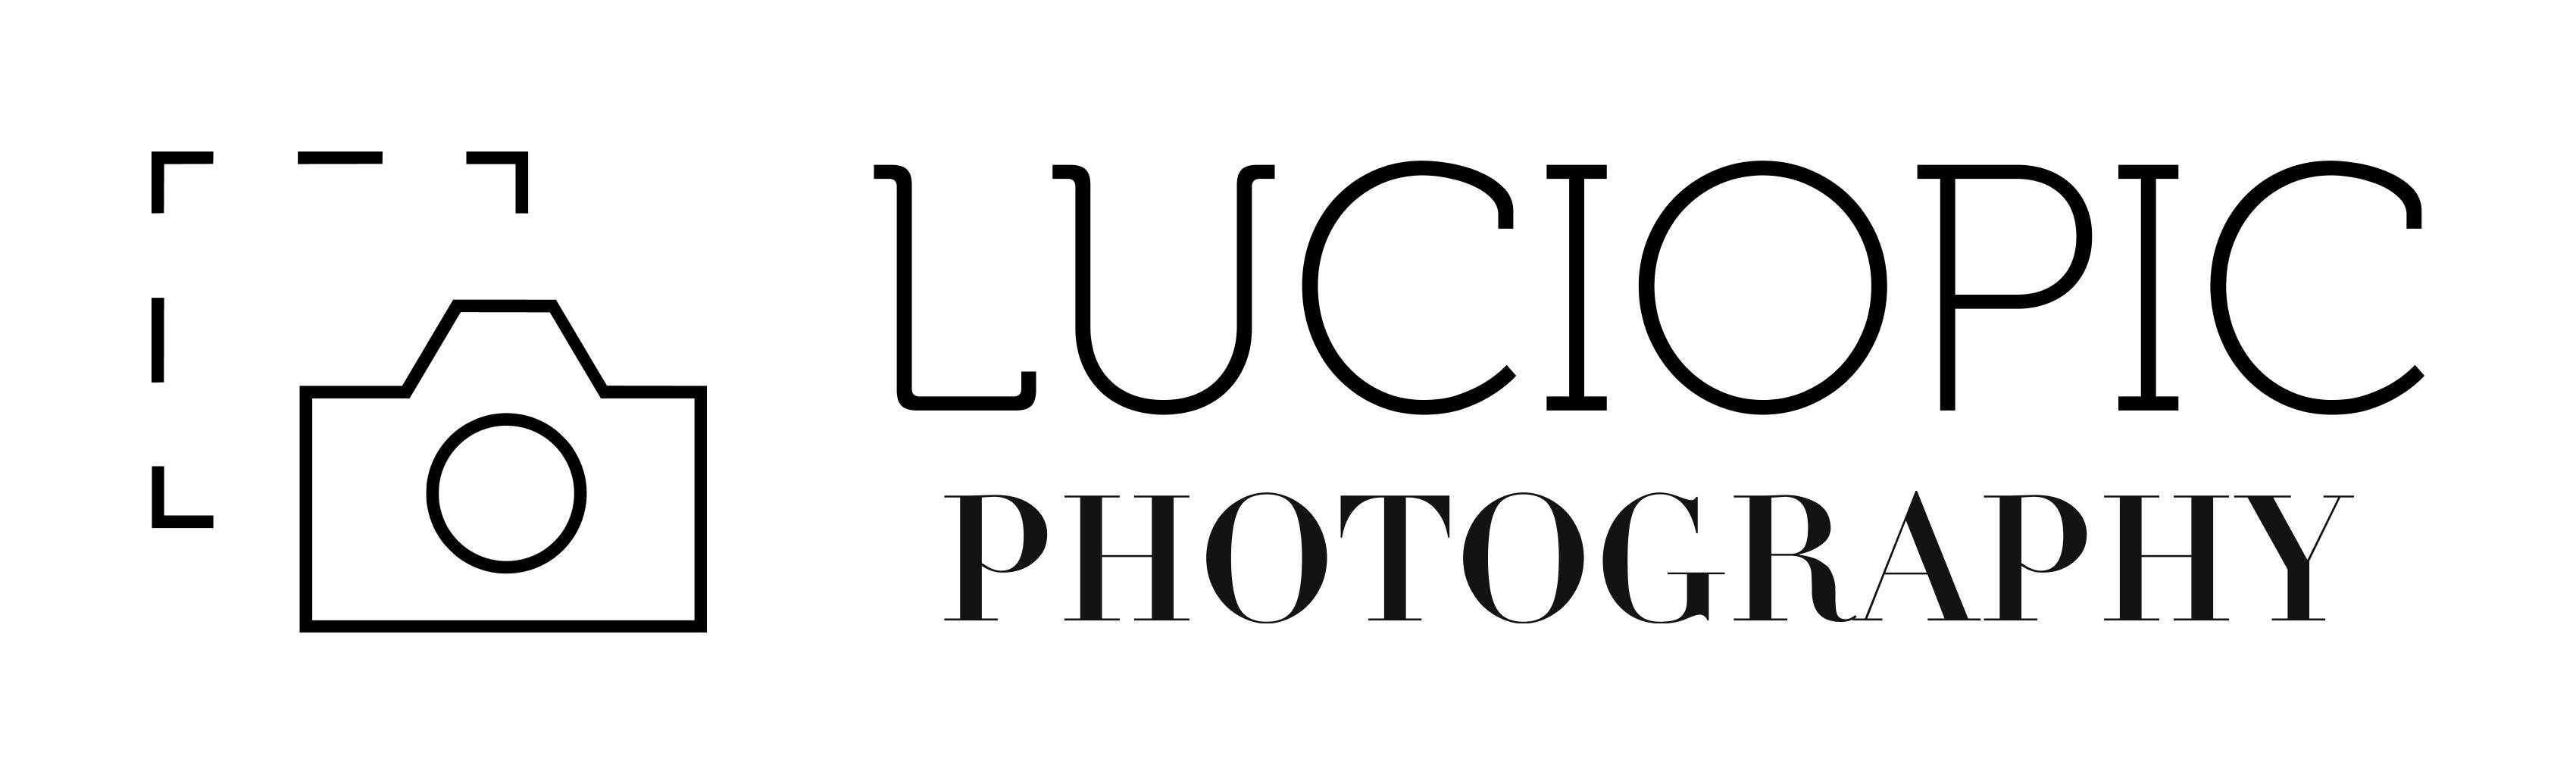 Luciopic photography